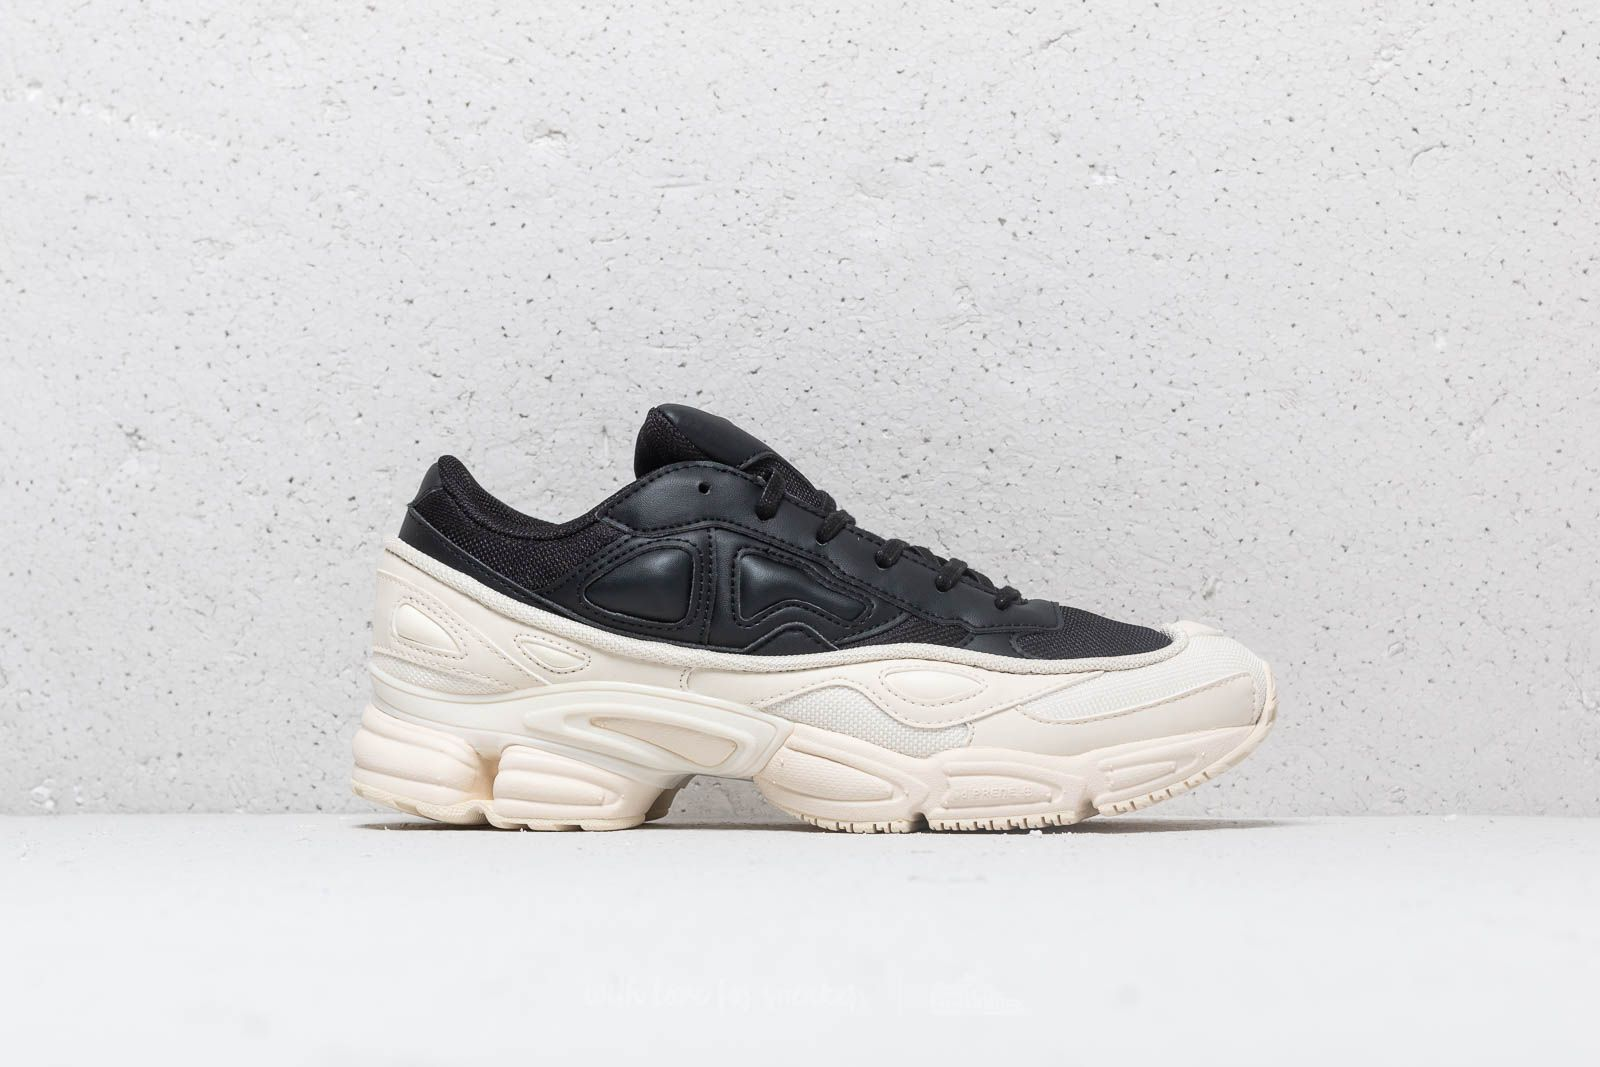 52131ca89e0c adidas x Raf Simons Ozweego Cream White  Core Black  Core Black at a great